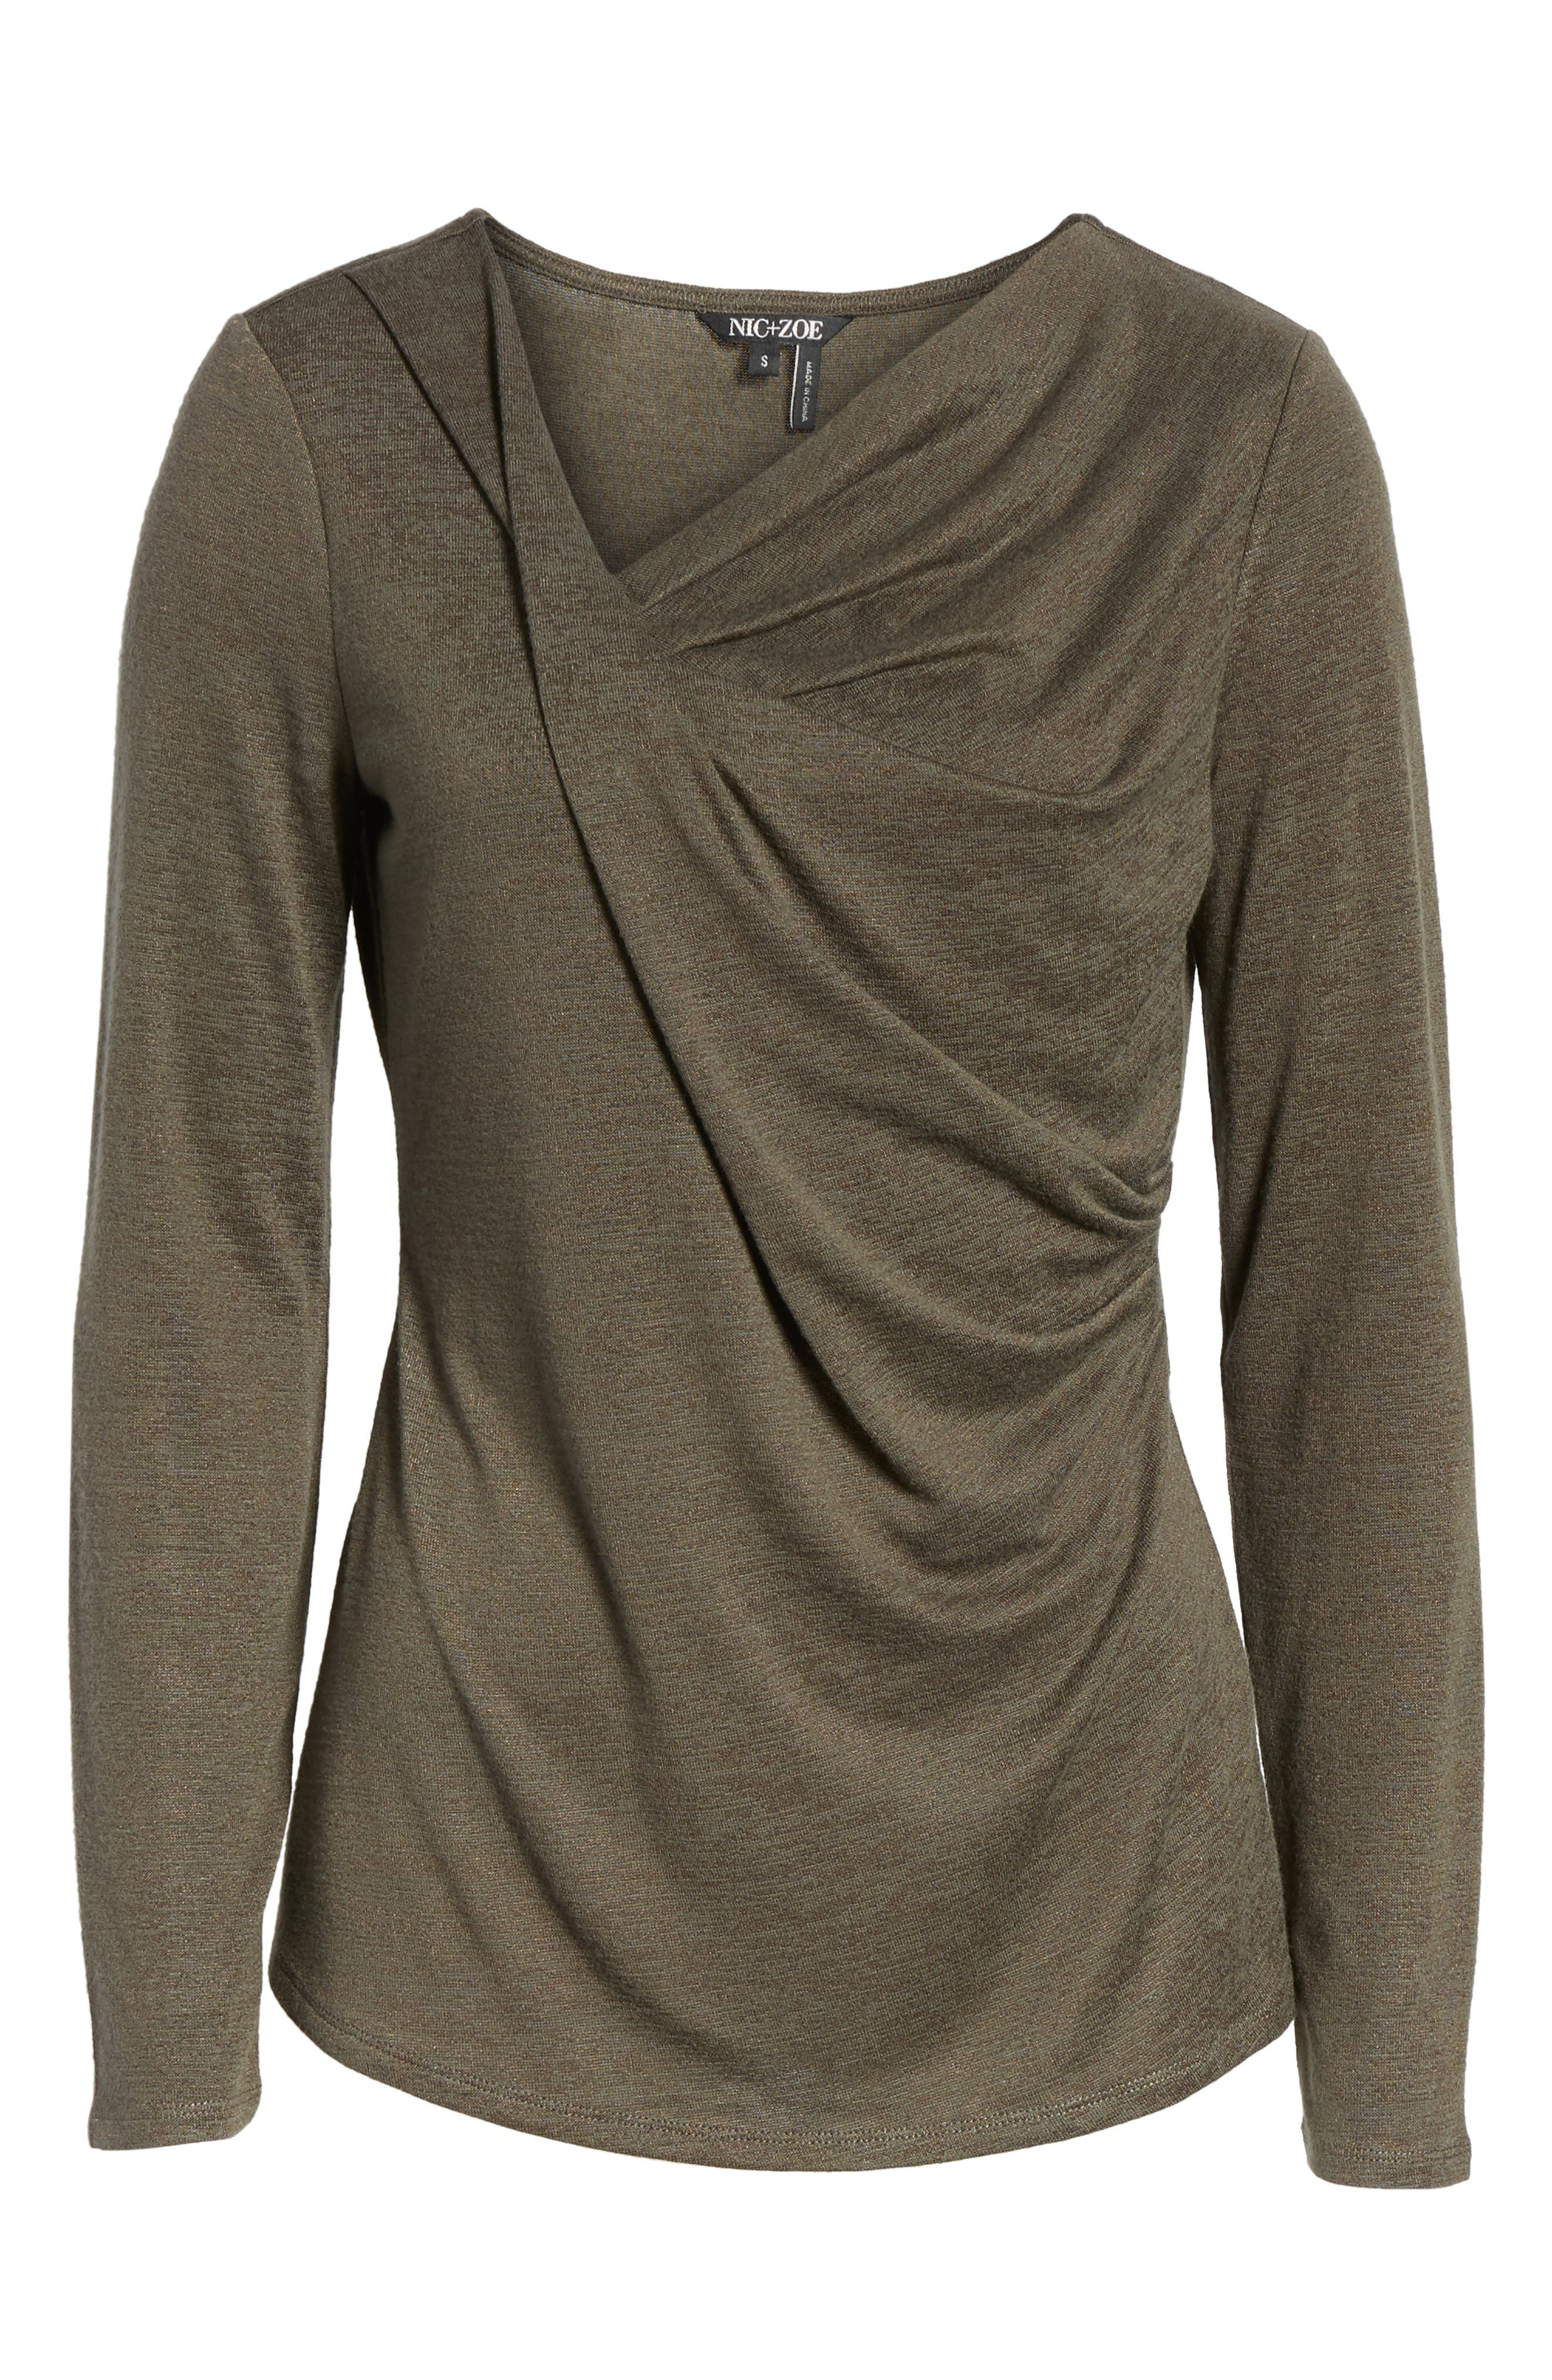 Every Occasion Drape Top,                             Alternate thumbnail 22, color,